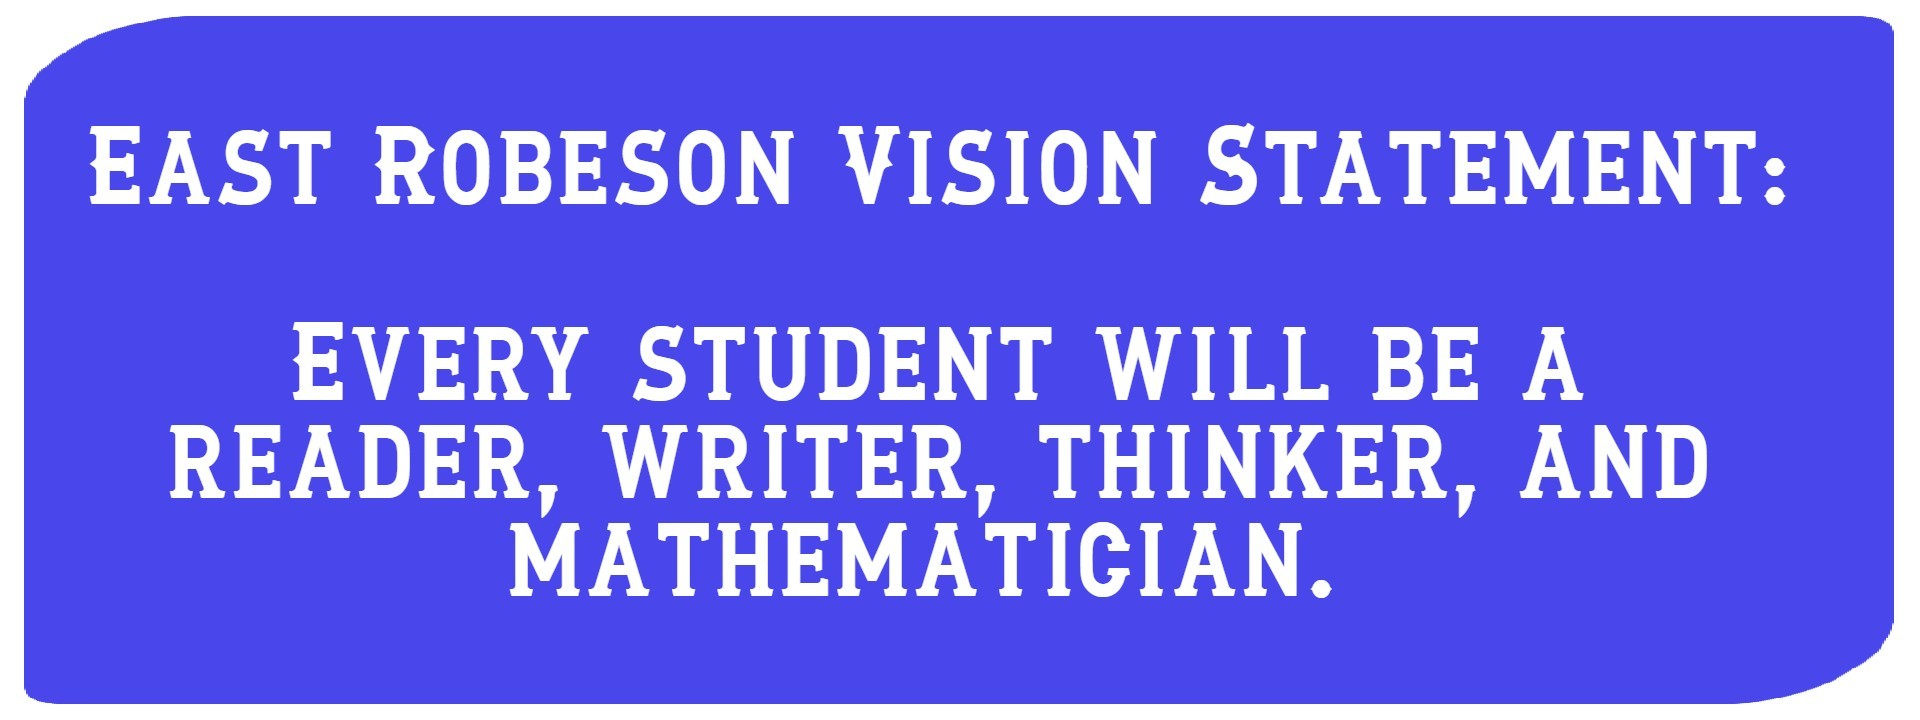 East Robeson Vision Statement